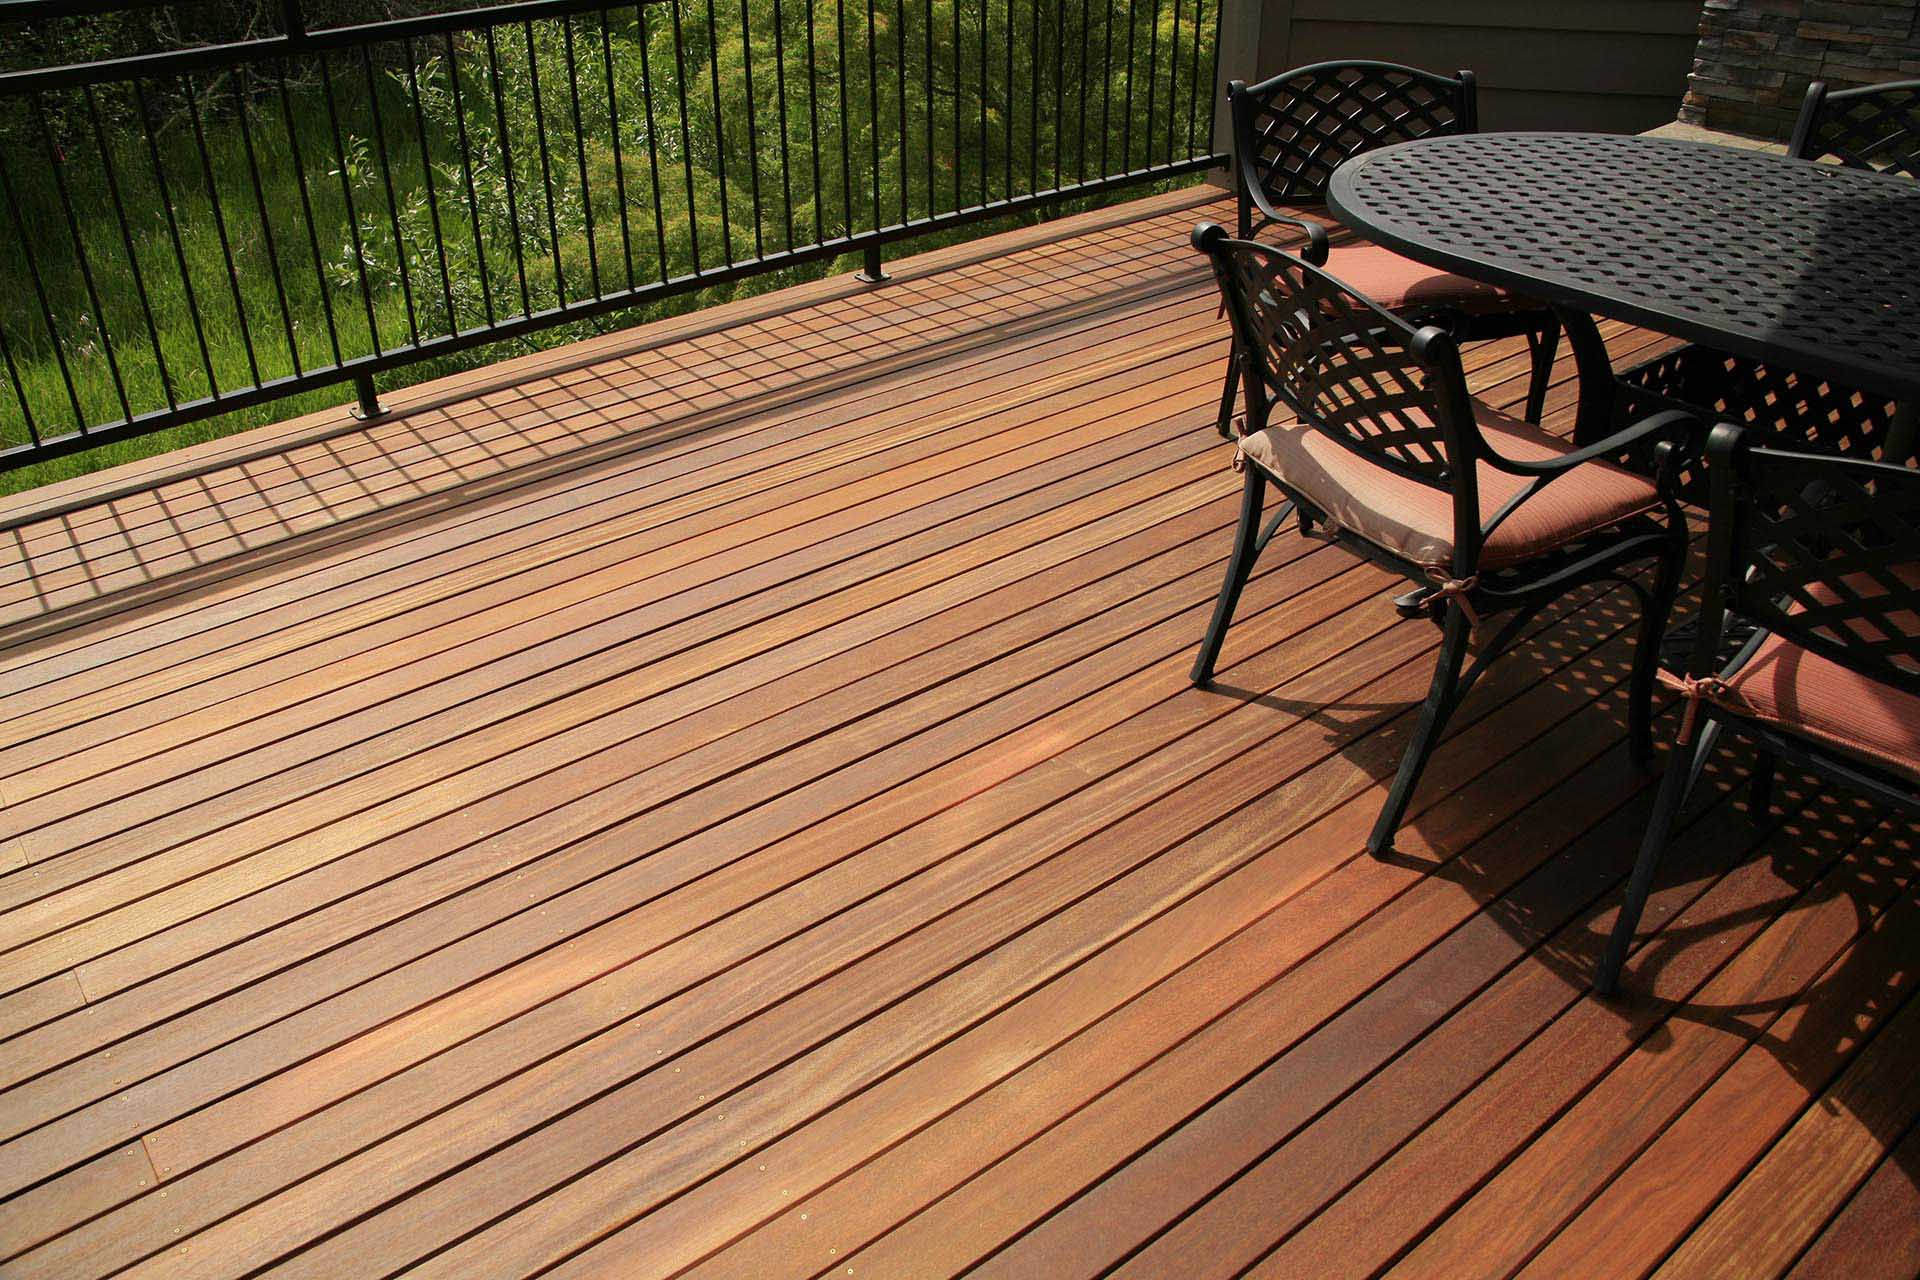 Cumaru Decking 1x4 Backyard Paradise 2.jpg